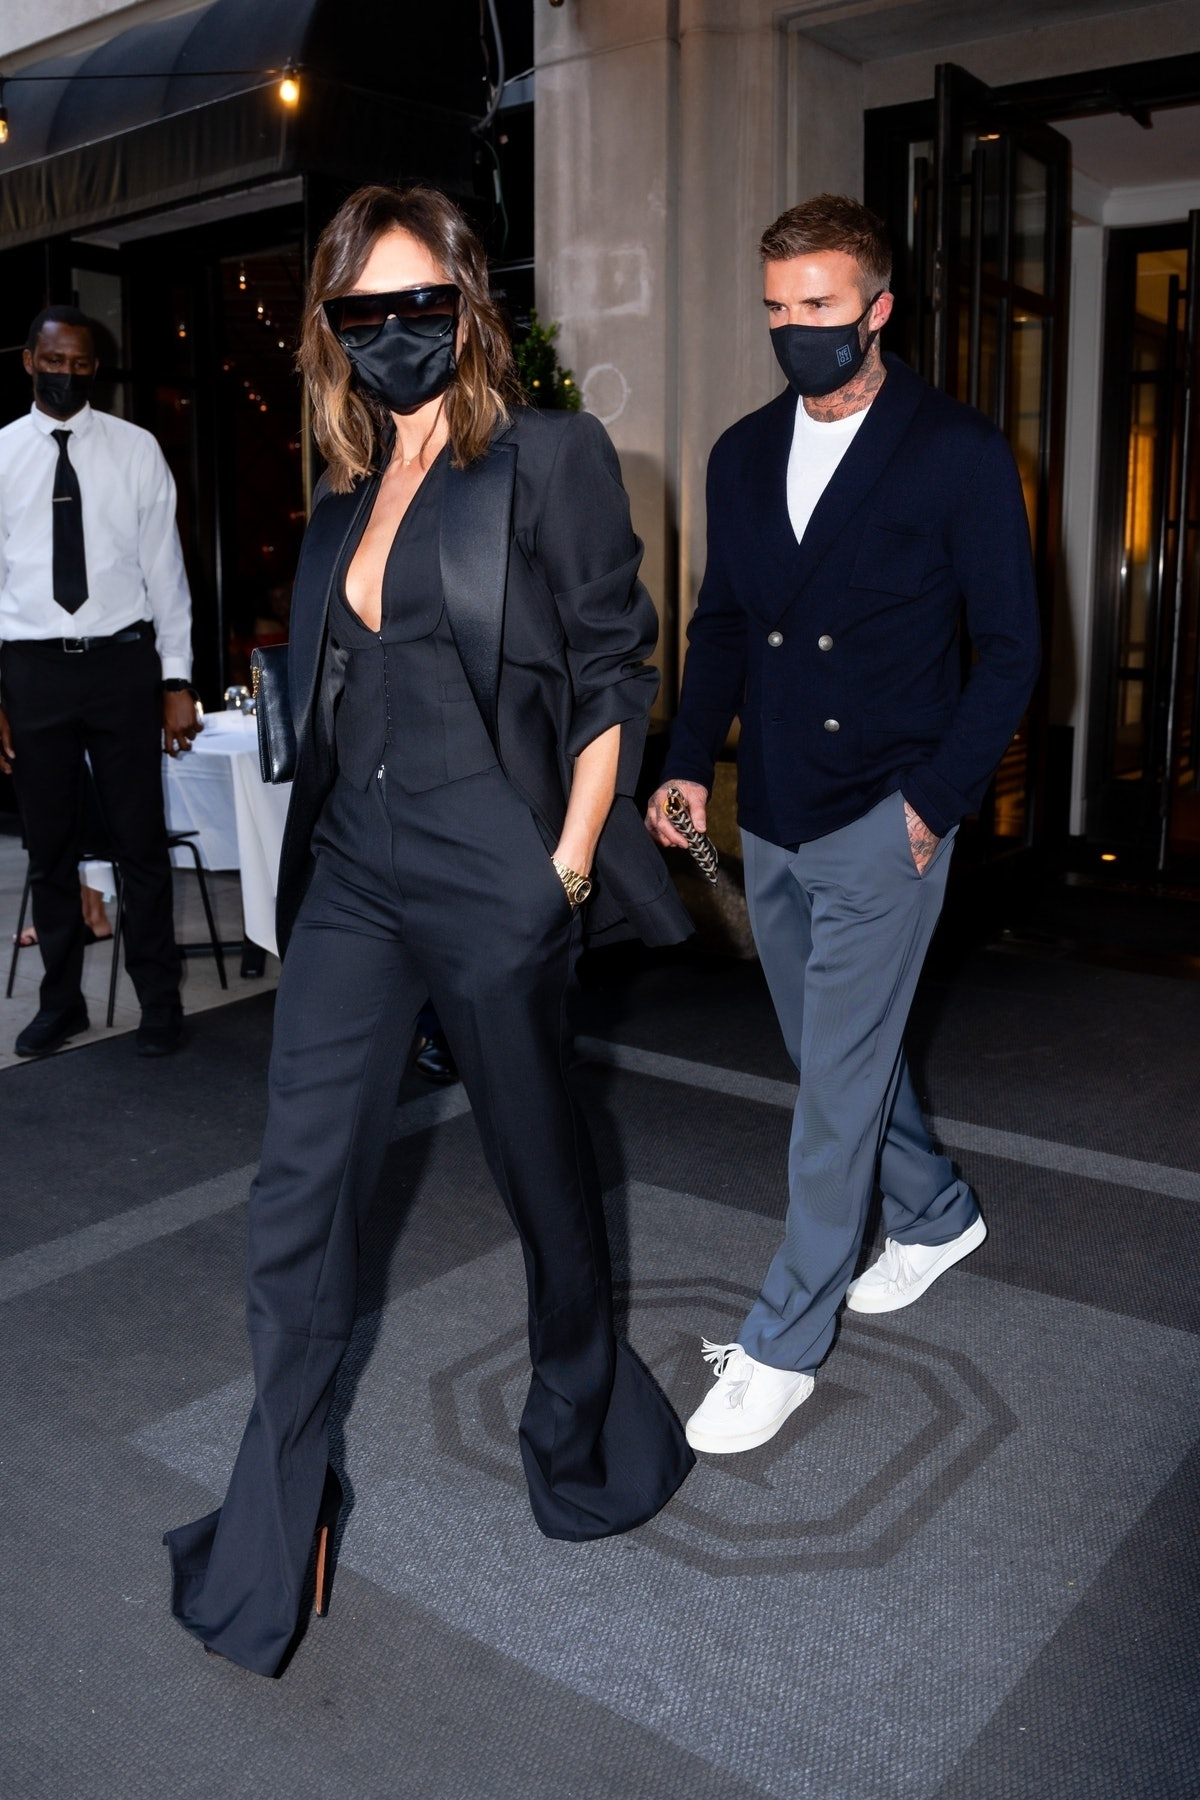 Victoria Beckham wears black tuxedo jacket and pants while out to dinner with David Beckham in New Y...